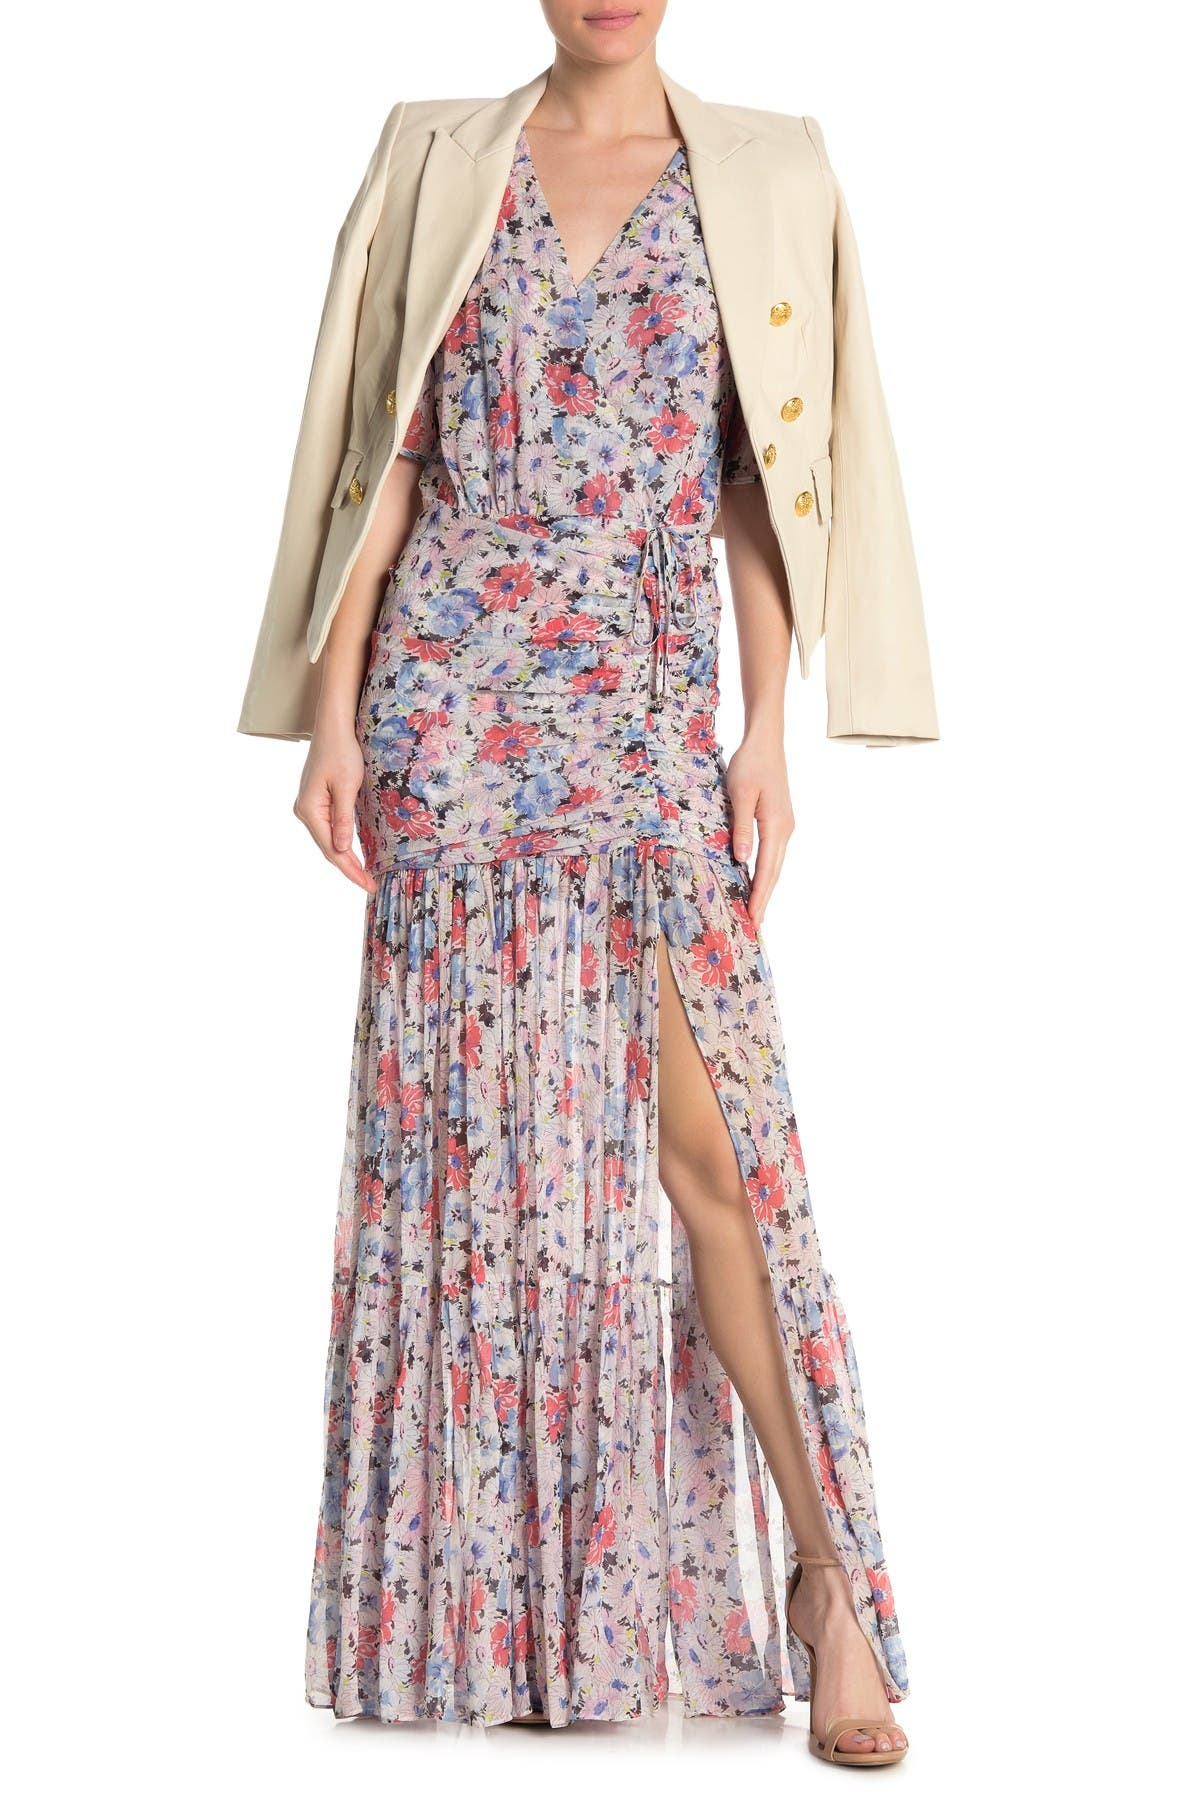 Image of VERONICA BEARD Mick Silk Floral Ruched Tie Maxi Dress